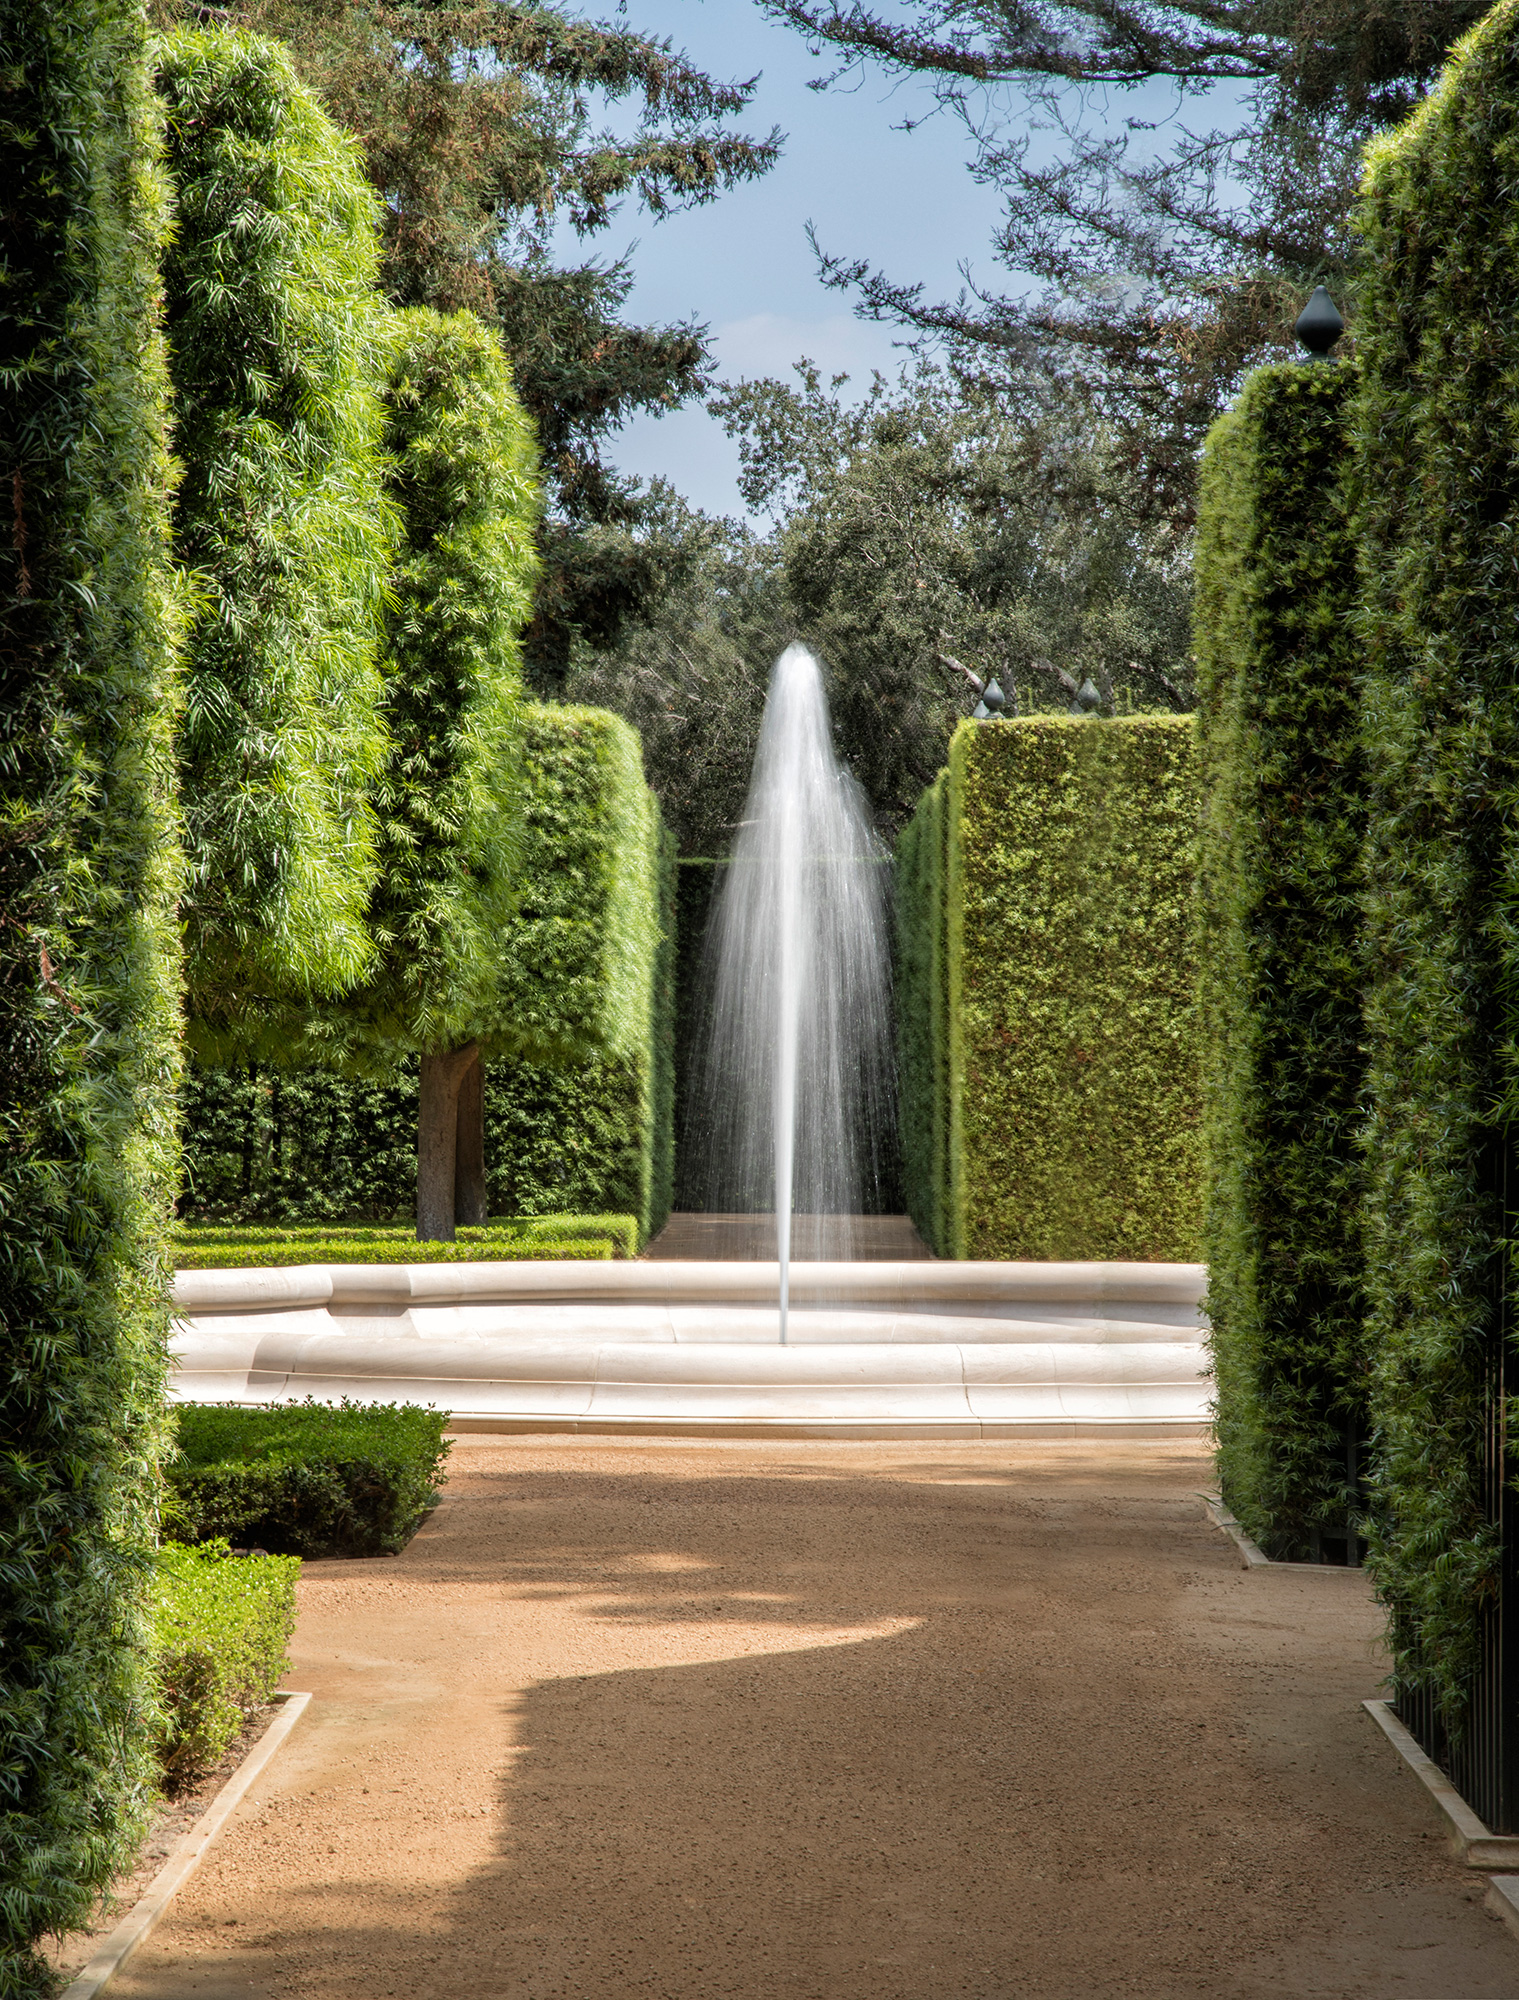 The Real Beverly Hillbillies Mansion for Sale in Bel-Air Just Got a $50 Million Price Chop most-expensive-home-america-founatin-hedges